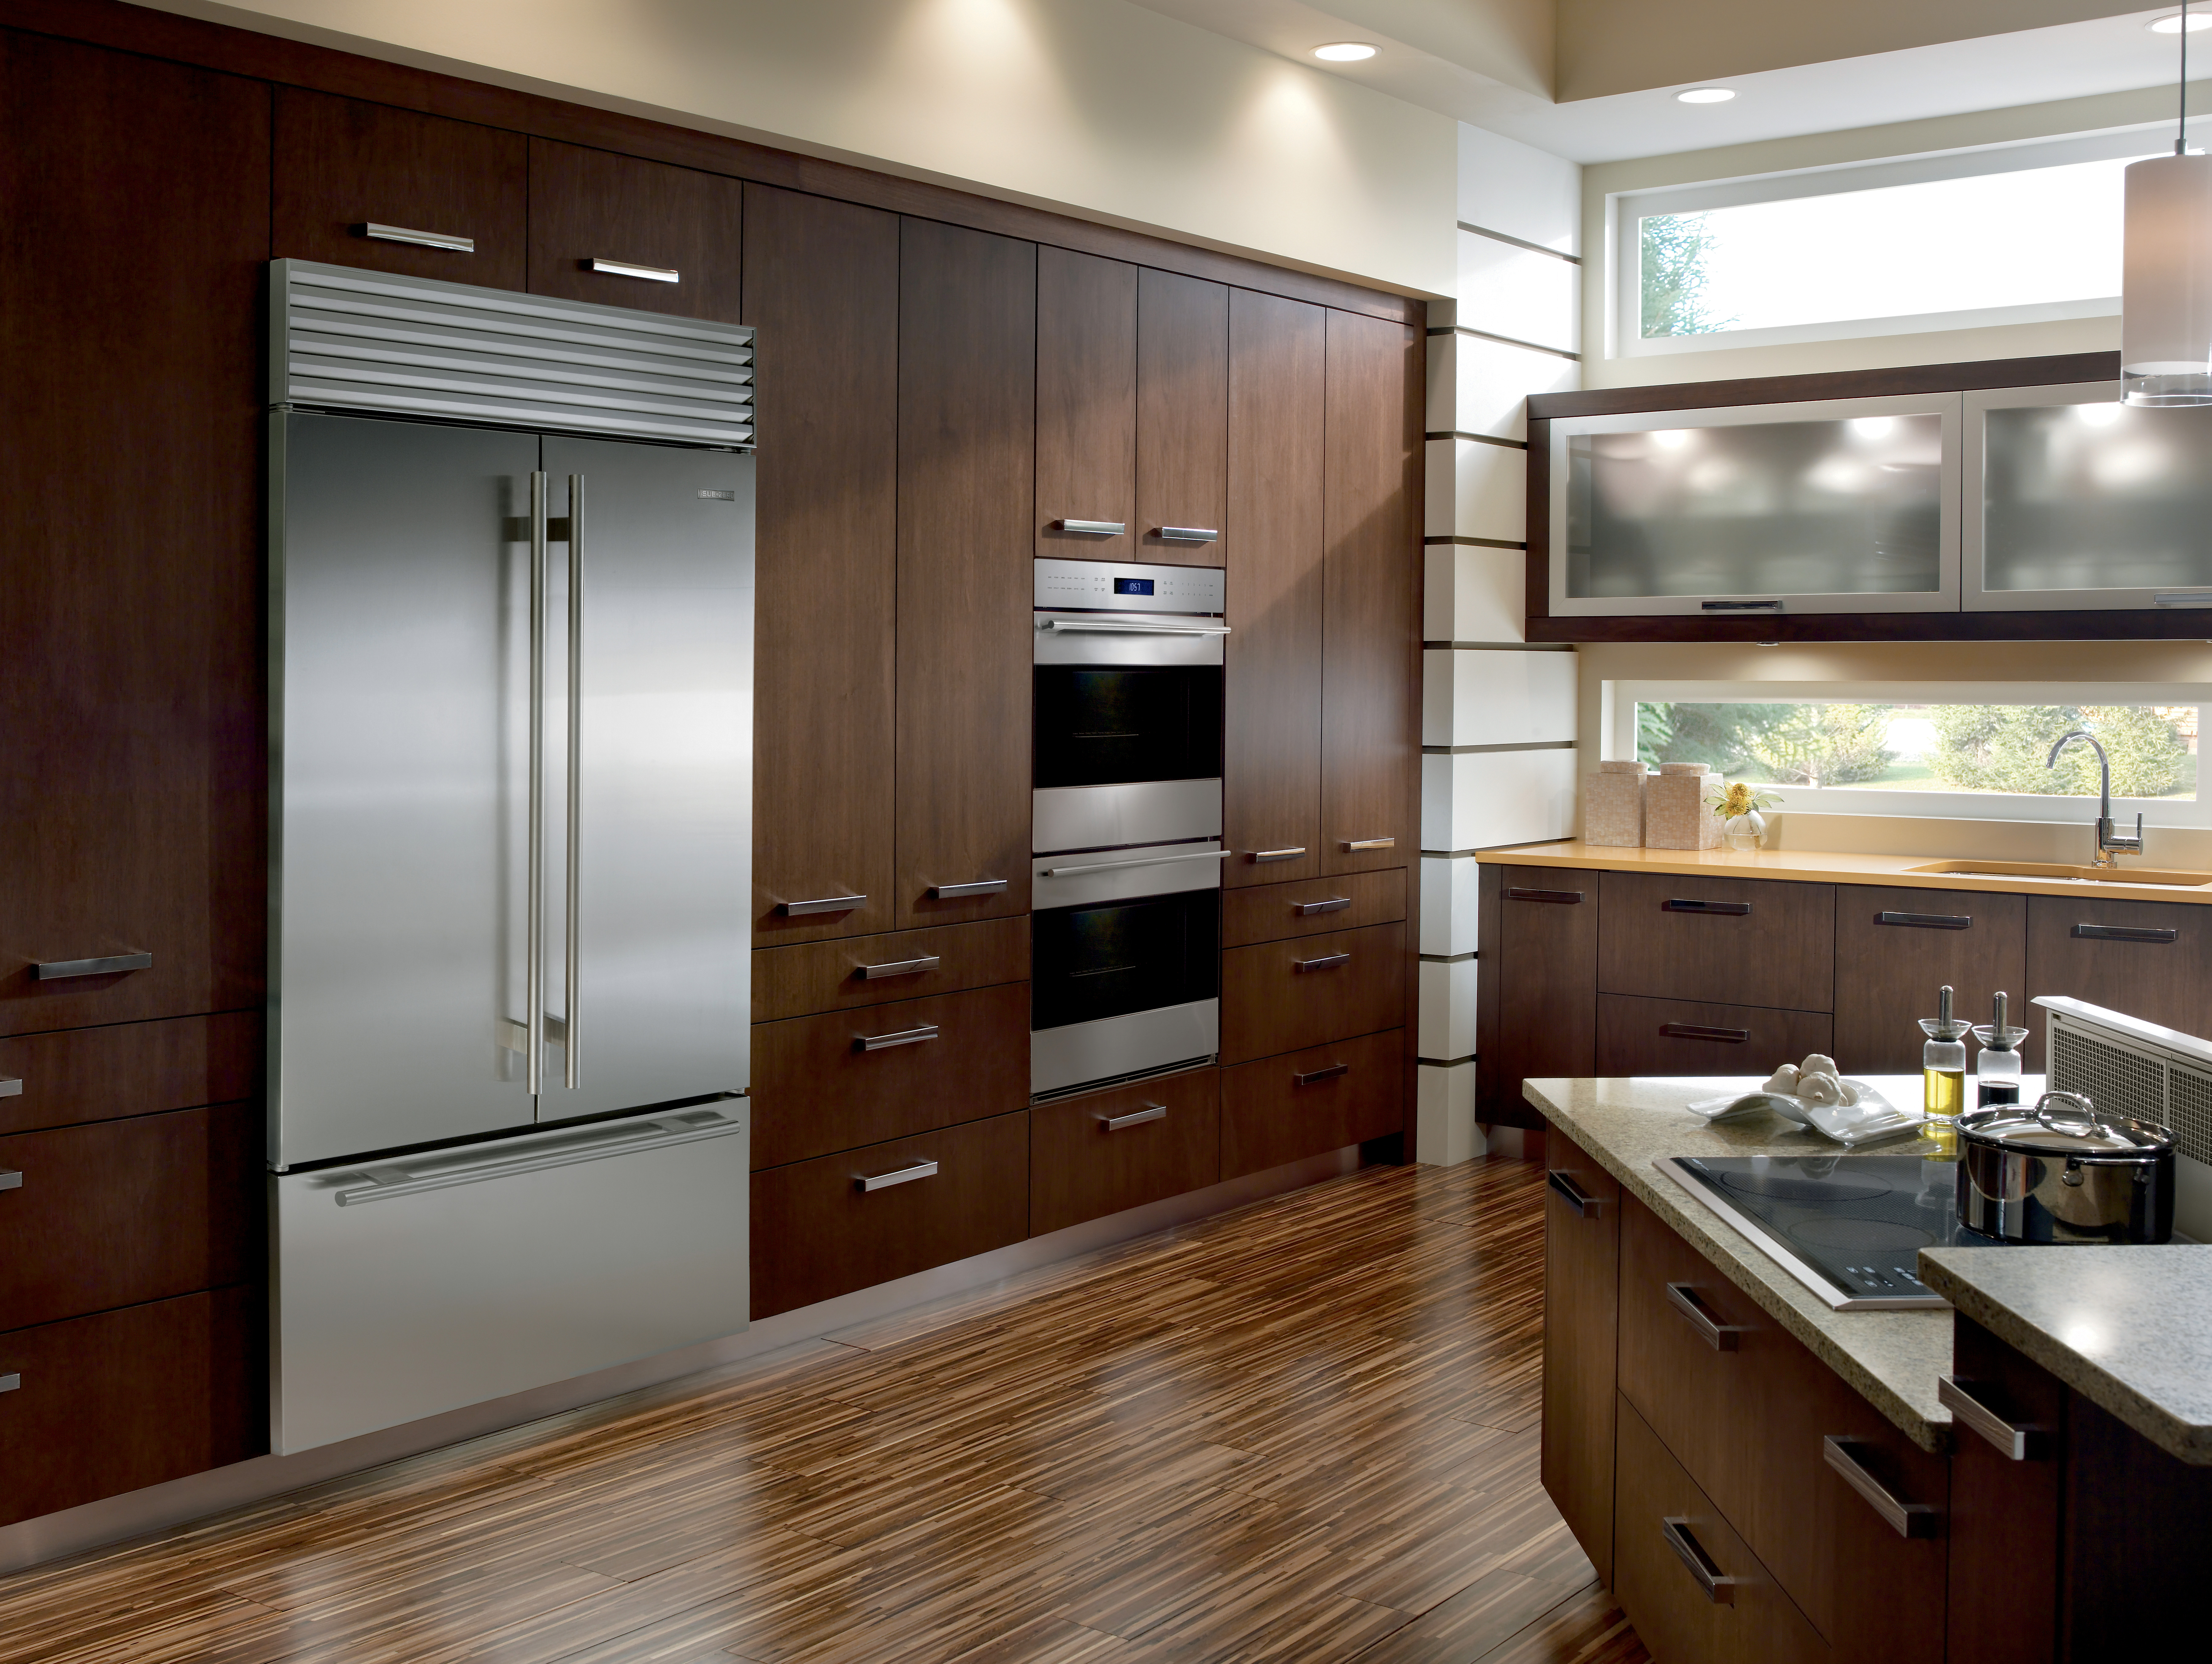 Sub-Zero BI-42UFD/S/TH all stainless in kitchen with dark brown cabinets and hardwood flooring.